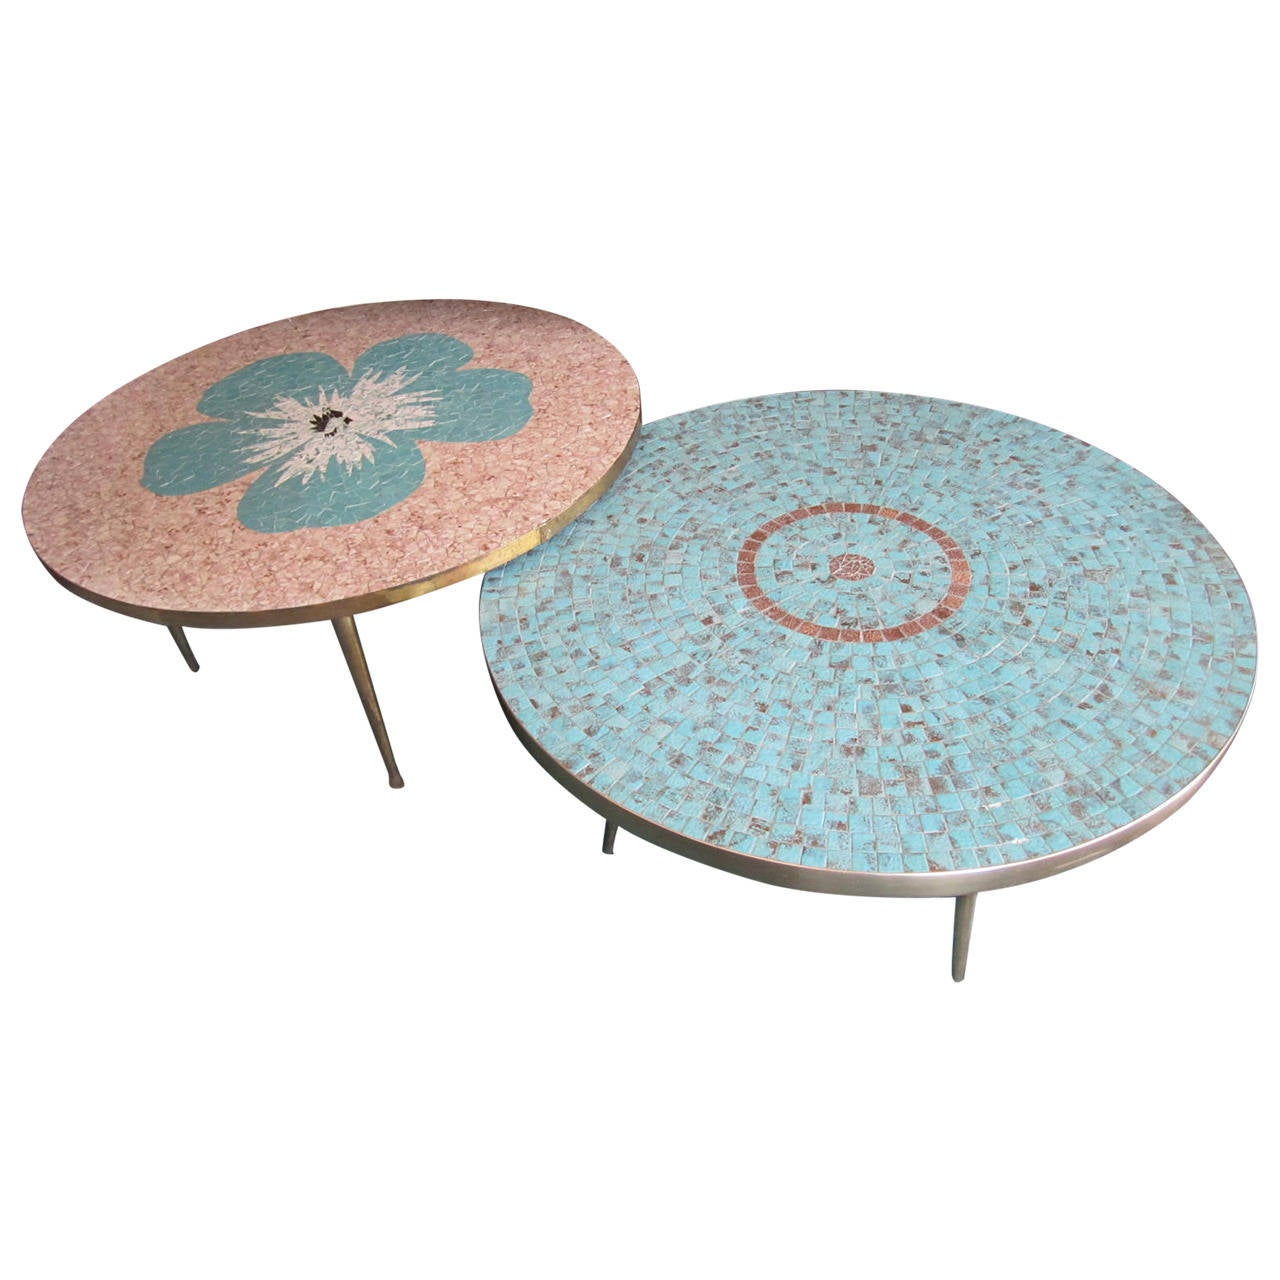 Stunning Mosaic Tile Top Circular Coffee Tables, Mid Century Modern For Sale